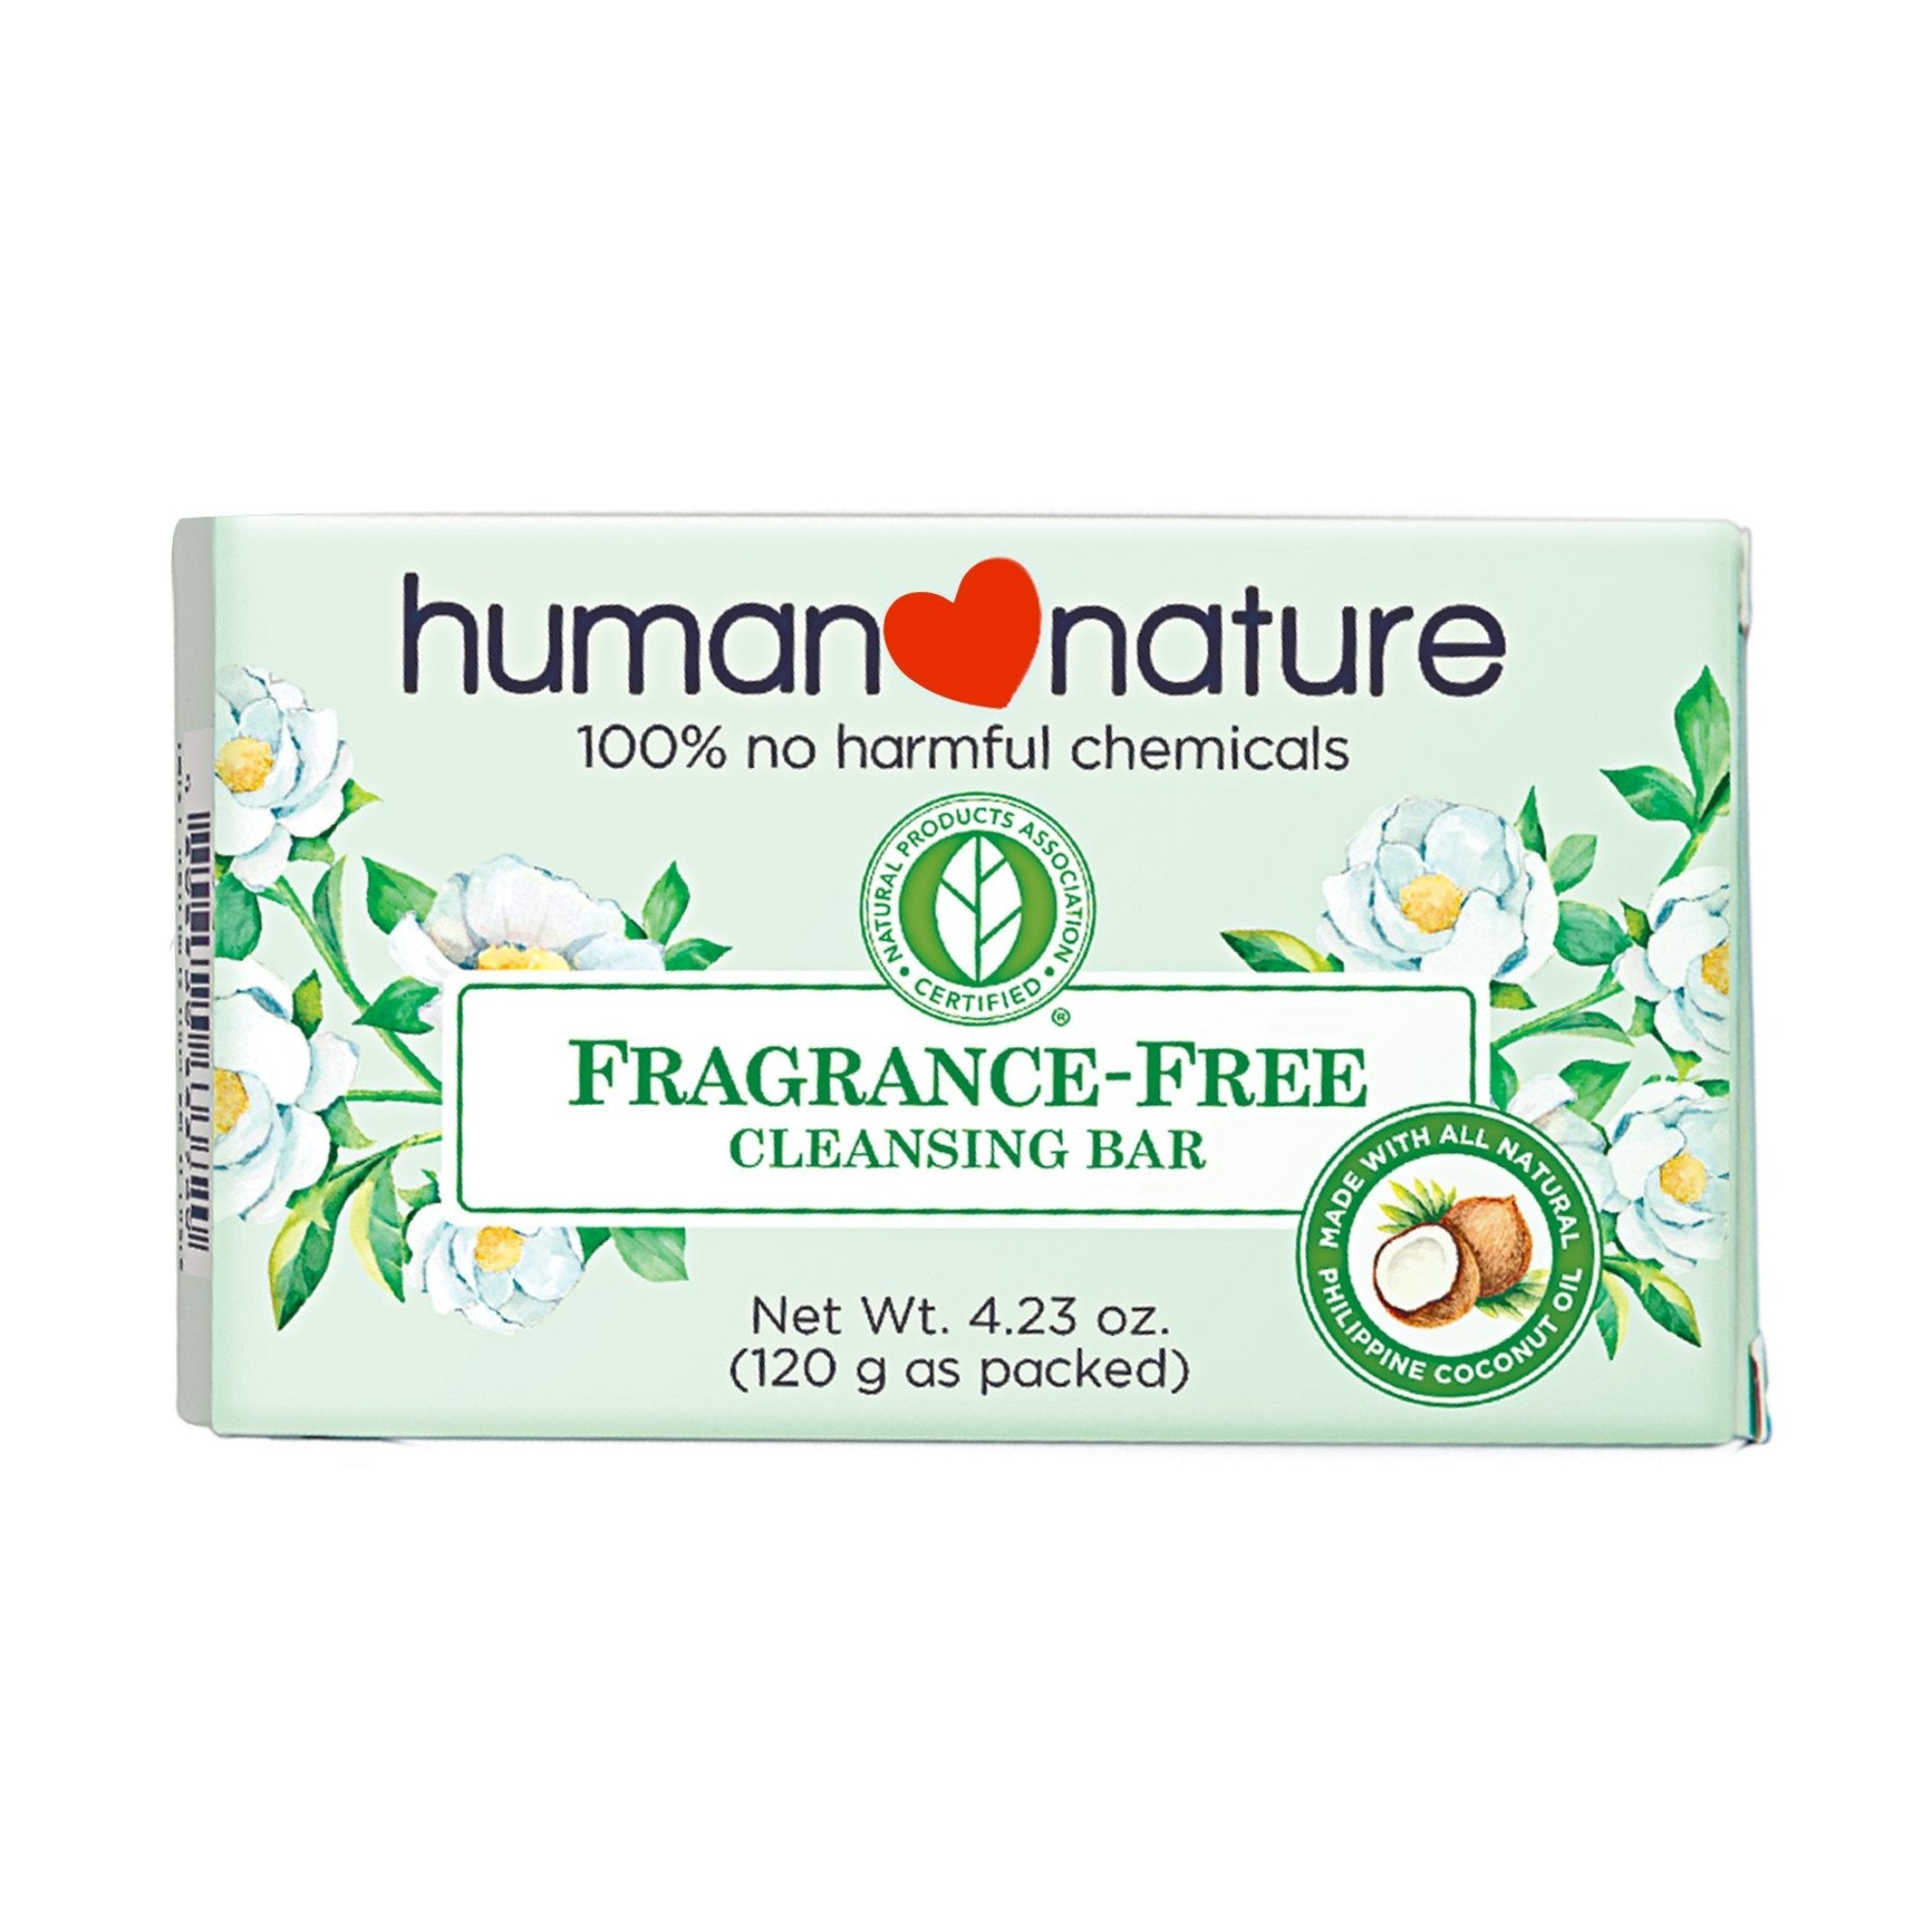 Fragrance-Free Cleansing Bar Soap 120g